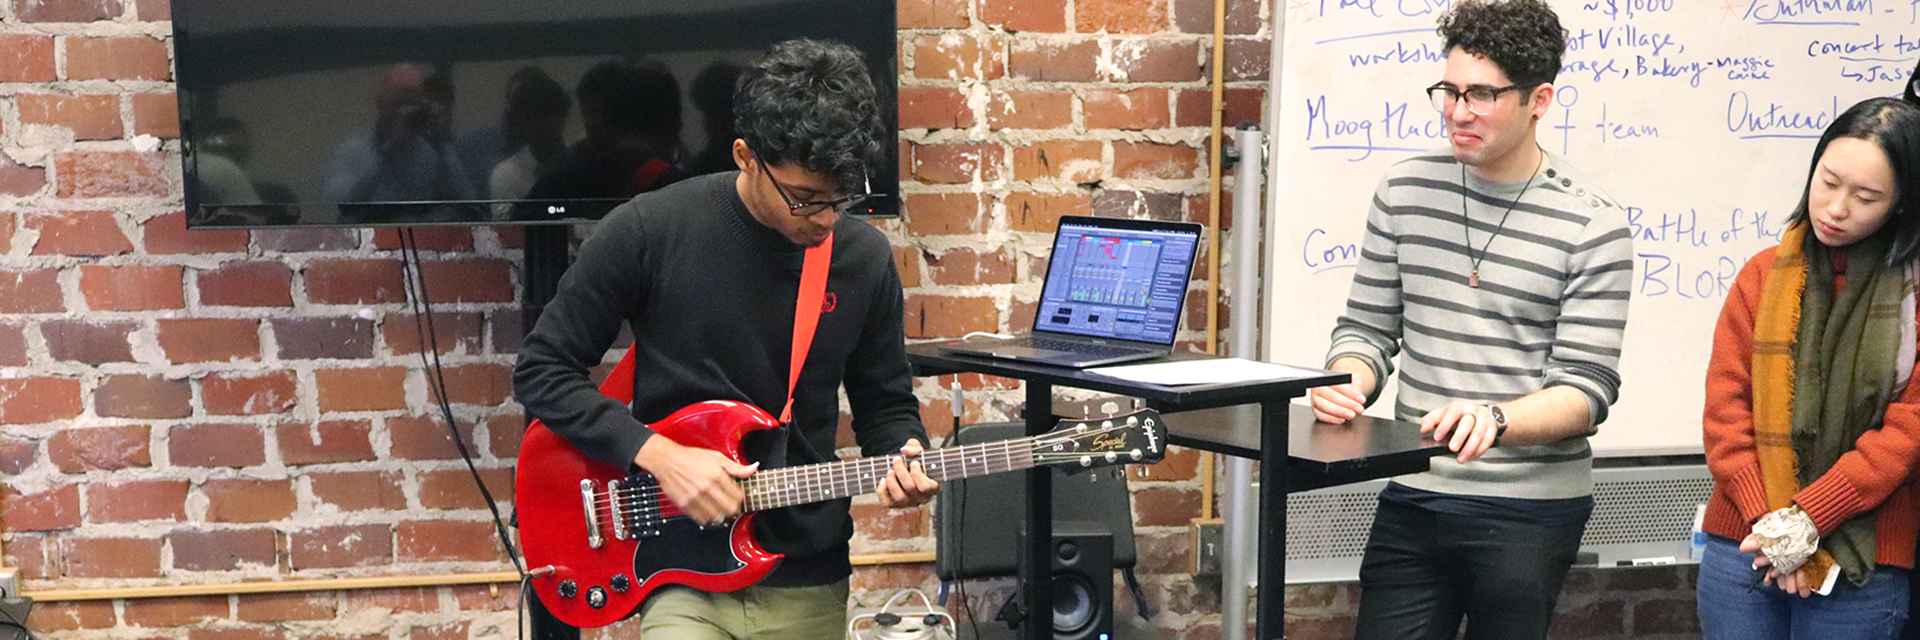 A student plays the guitar as part of a project presentation.